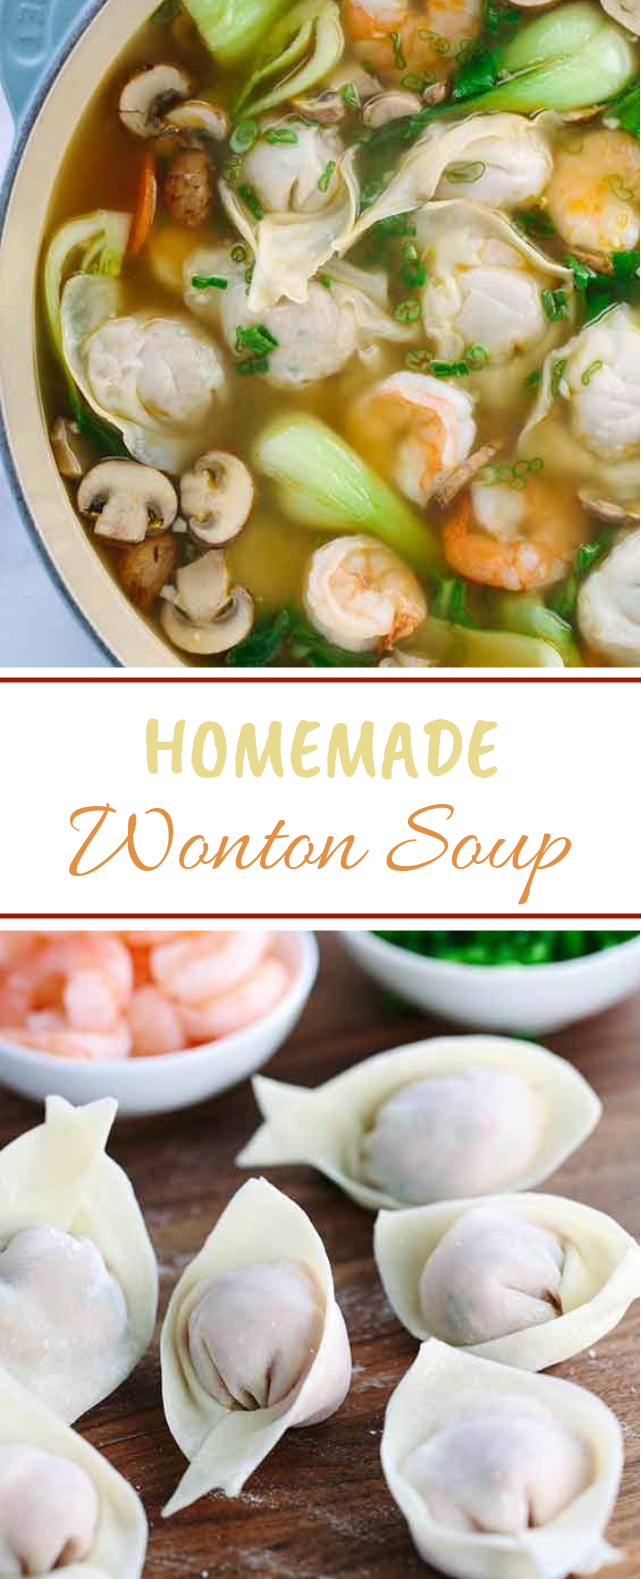 Homemade Wonton Soup #Asiafood #Soup